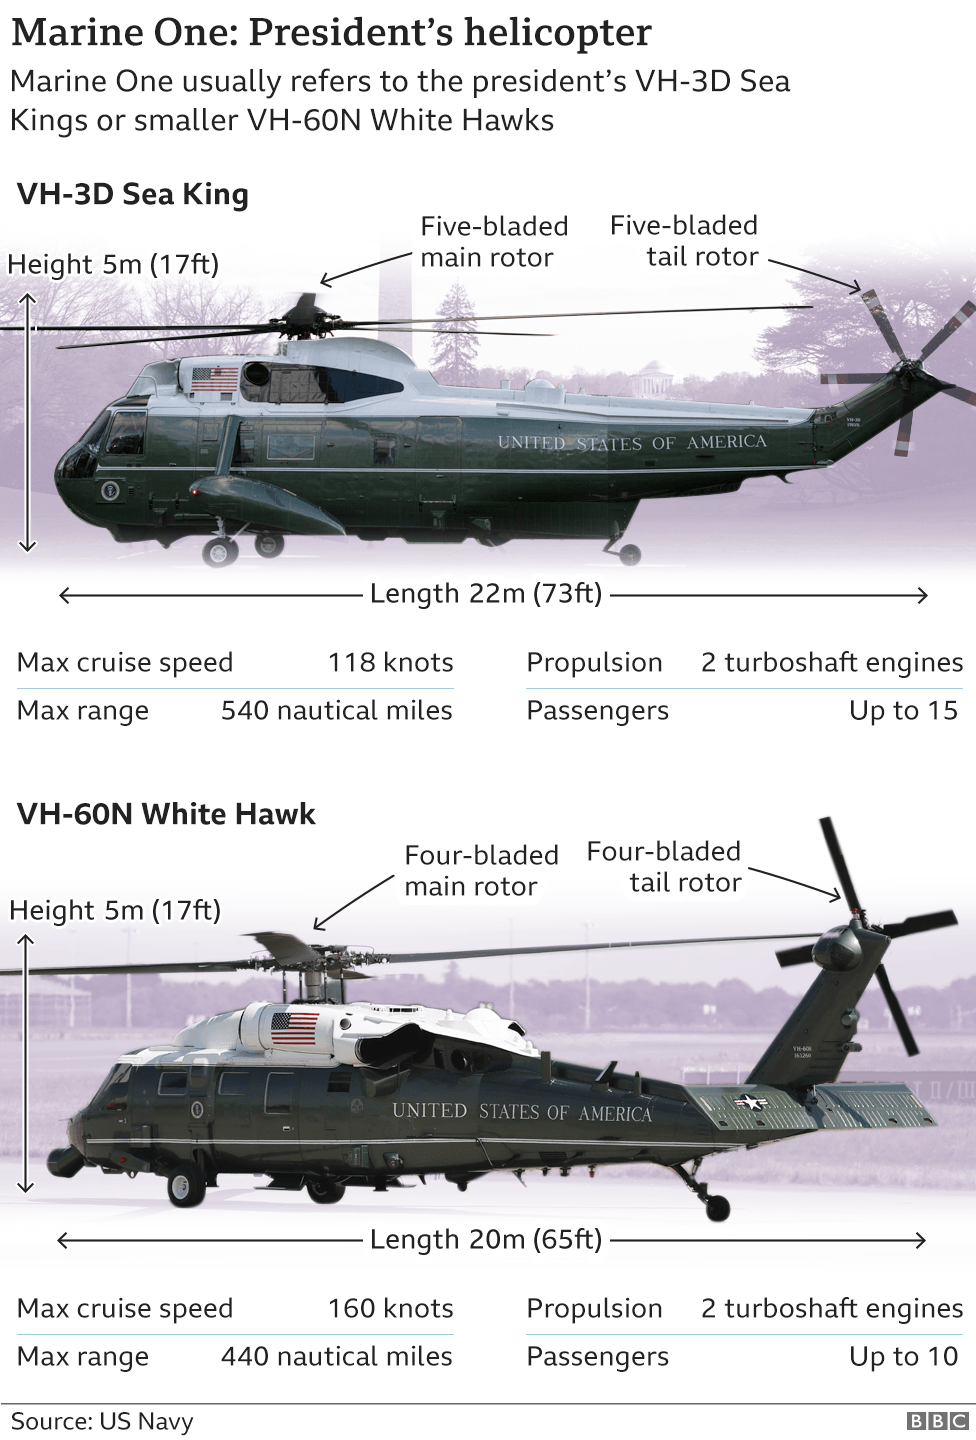 A graphic showing the presidential helicopters, known as Marine One